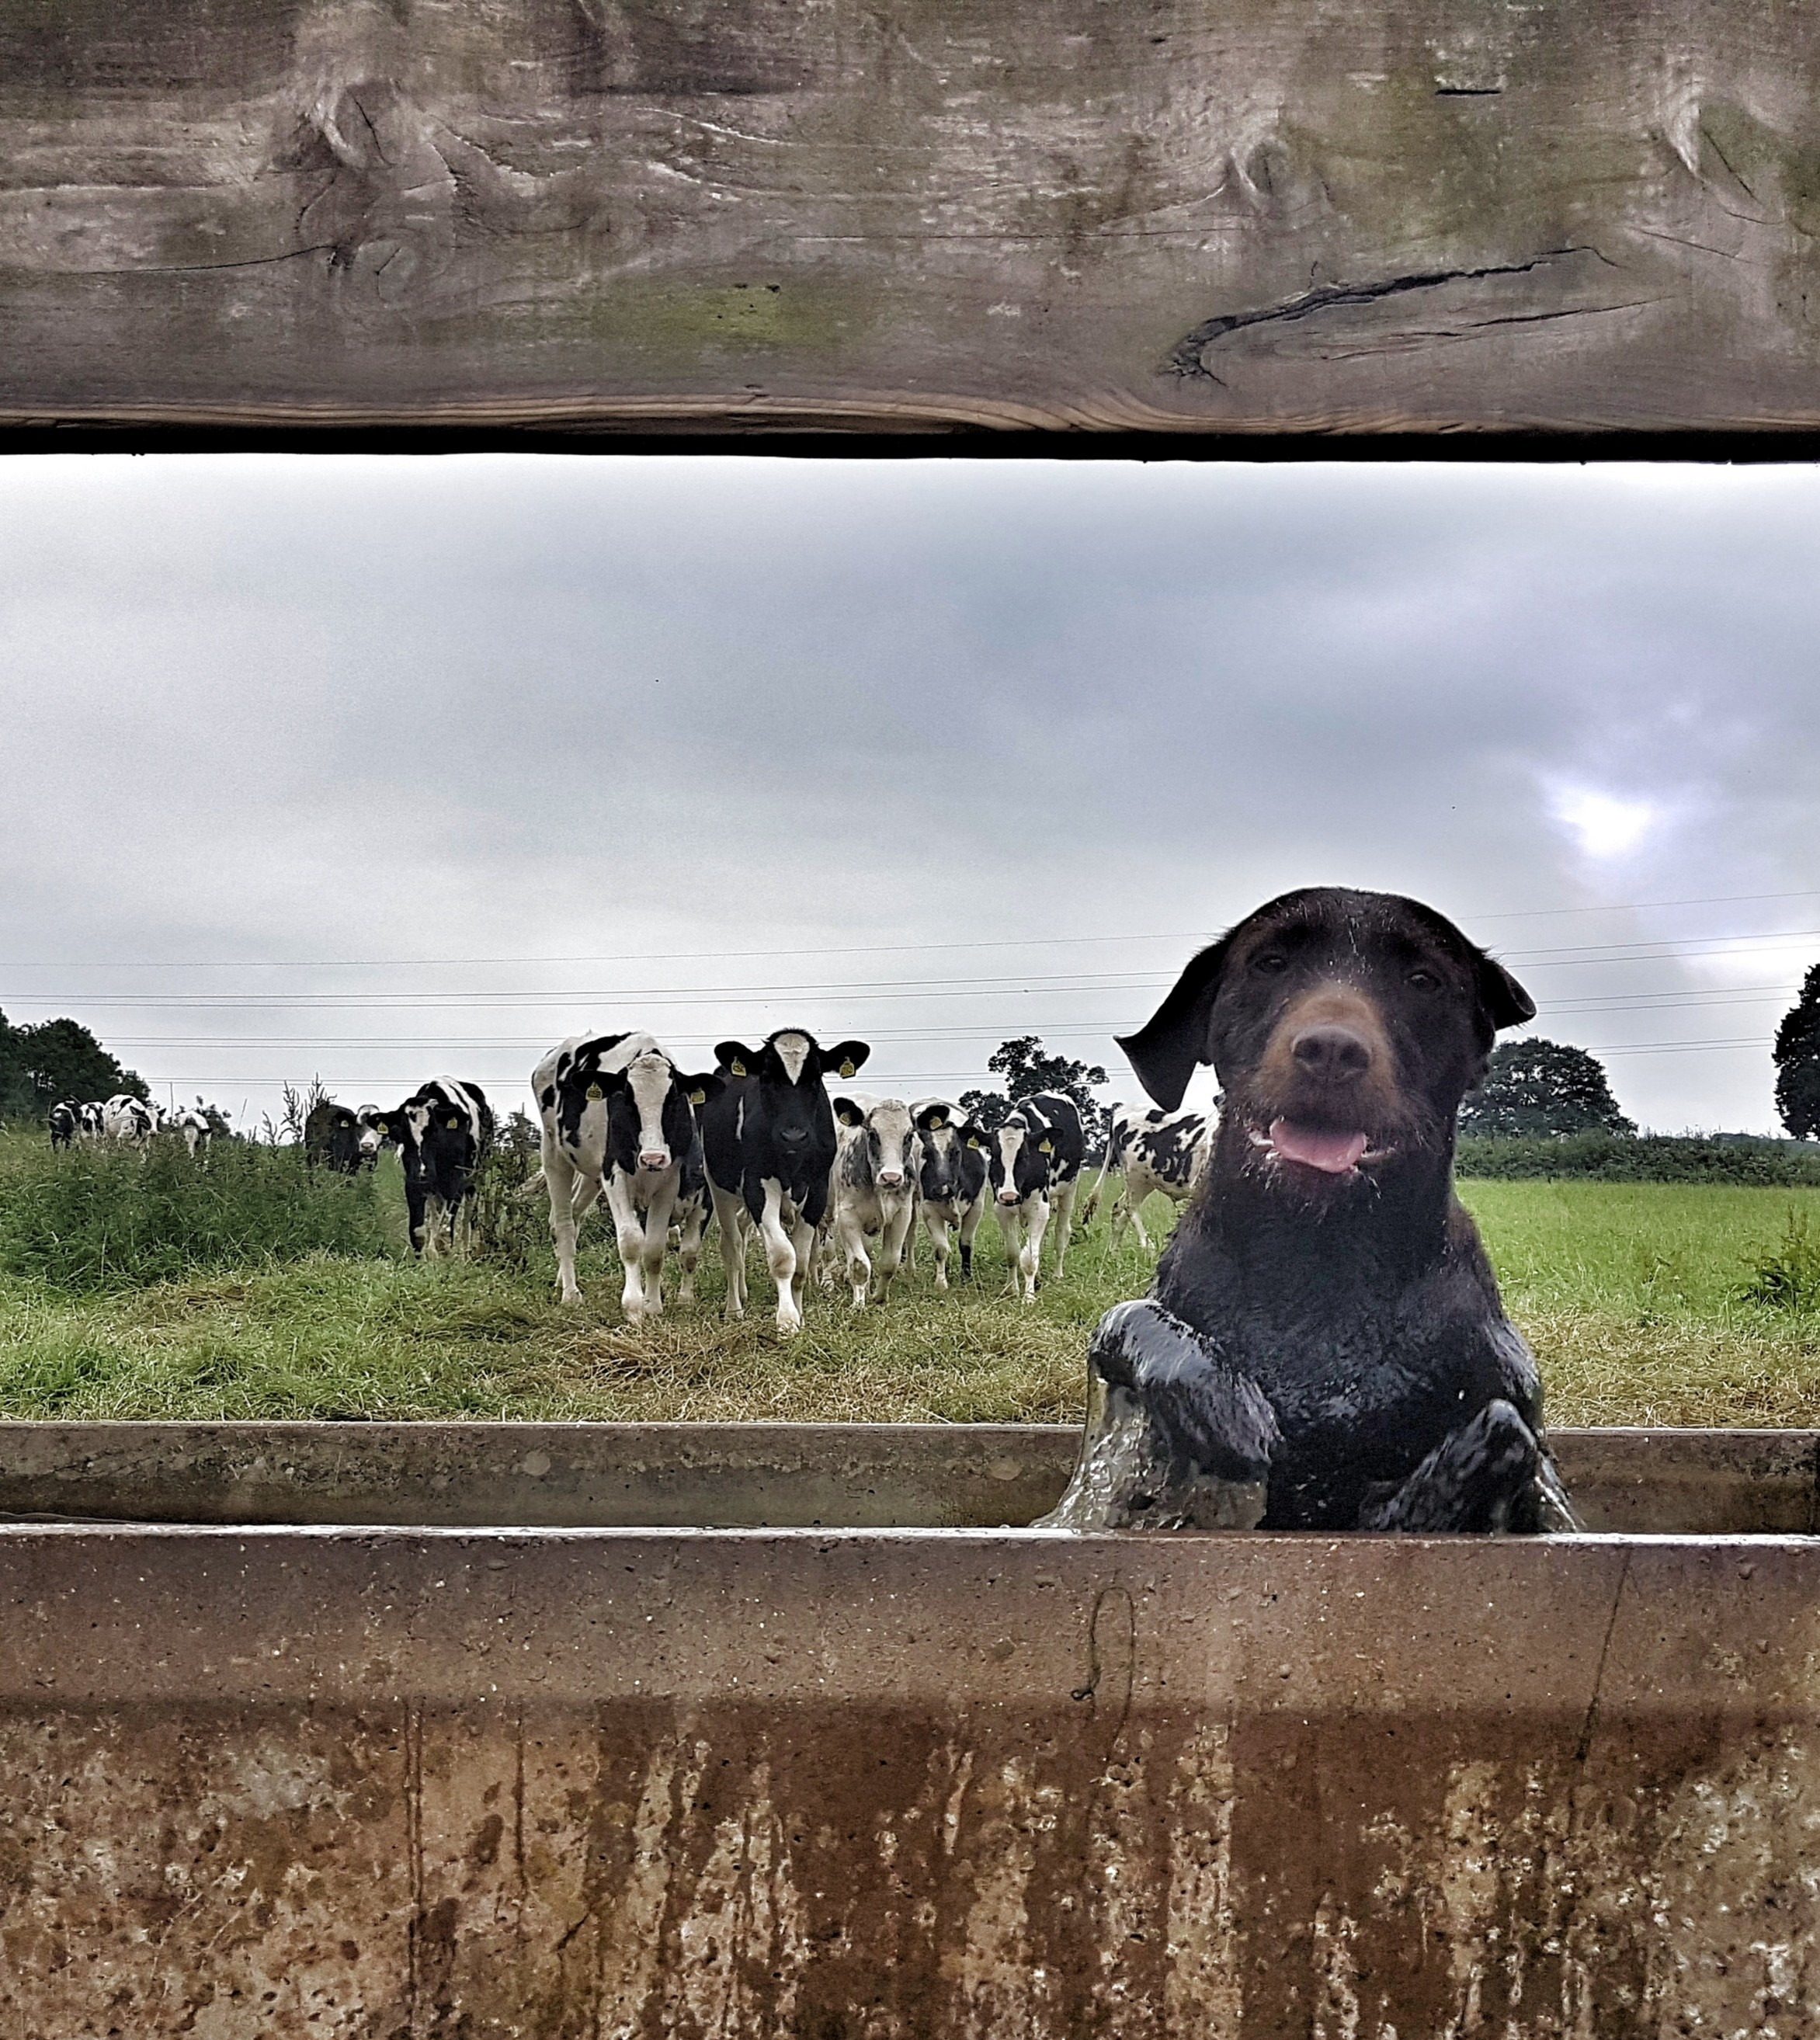 A happy dog appears to be bathing in some kind of farm trough, and a group of black and white cows approach from behind